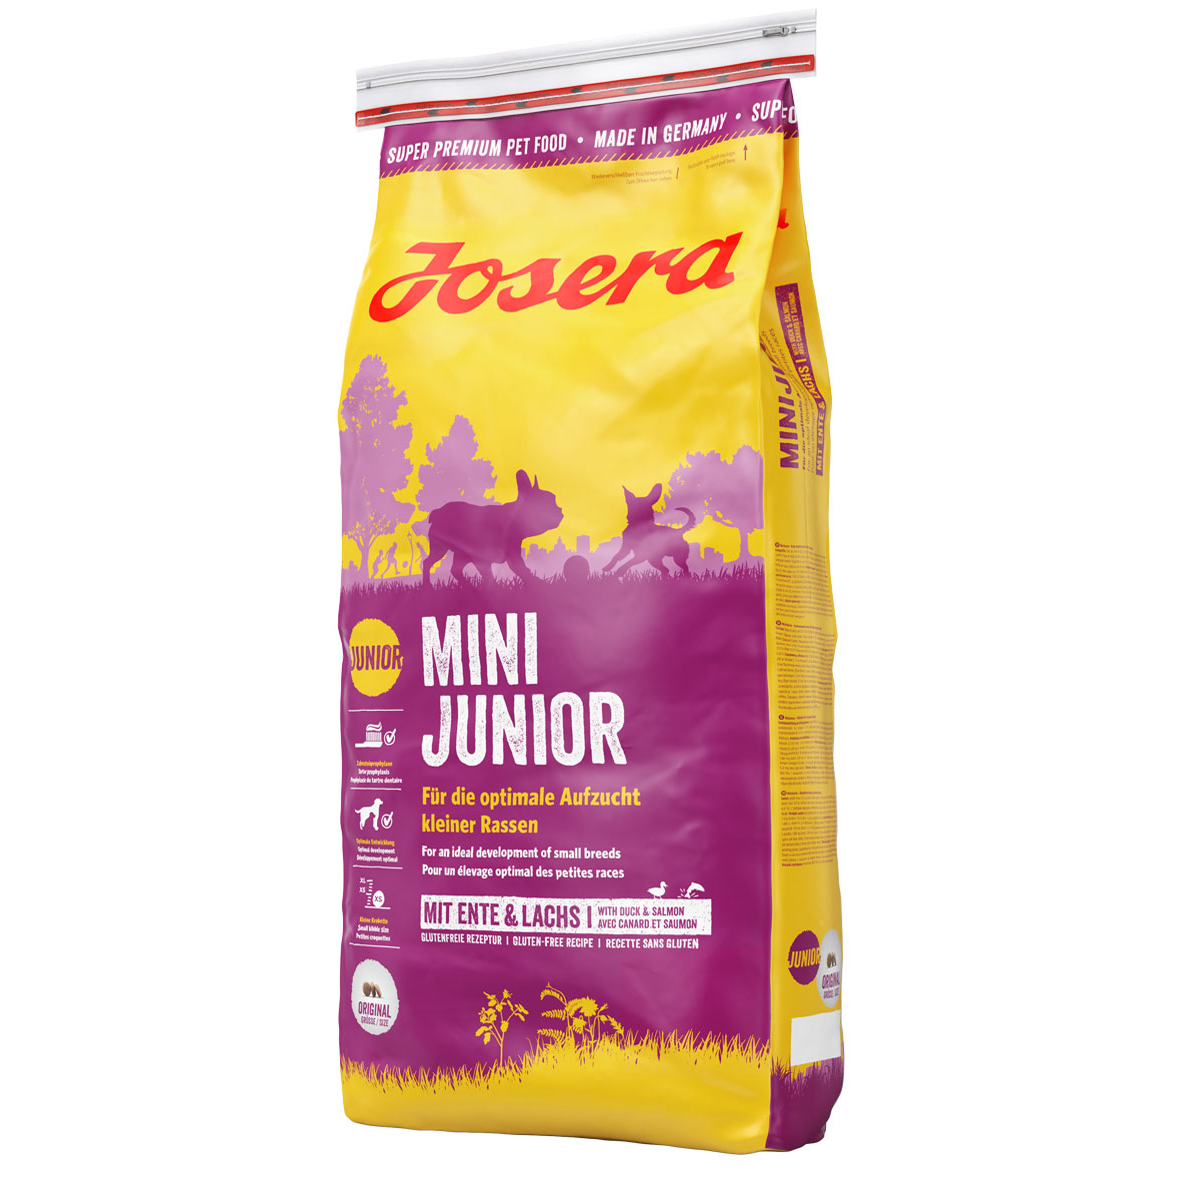 Josera Mini Junior Hundefutter, 4kg